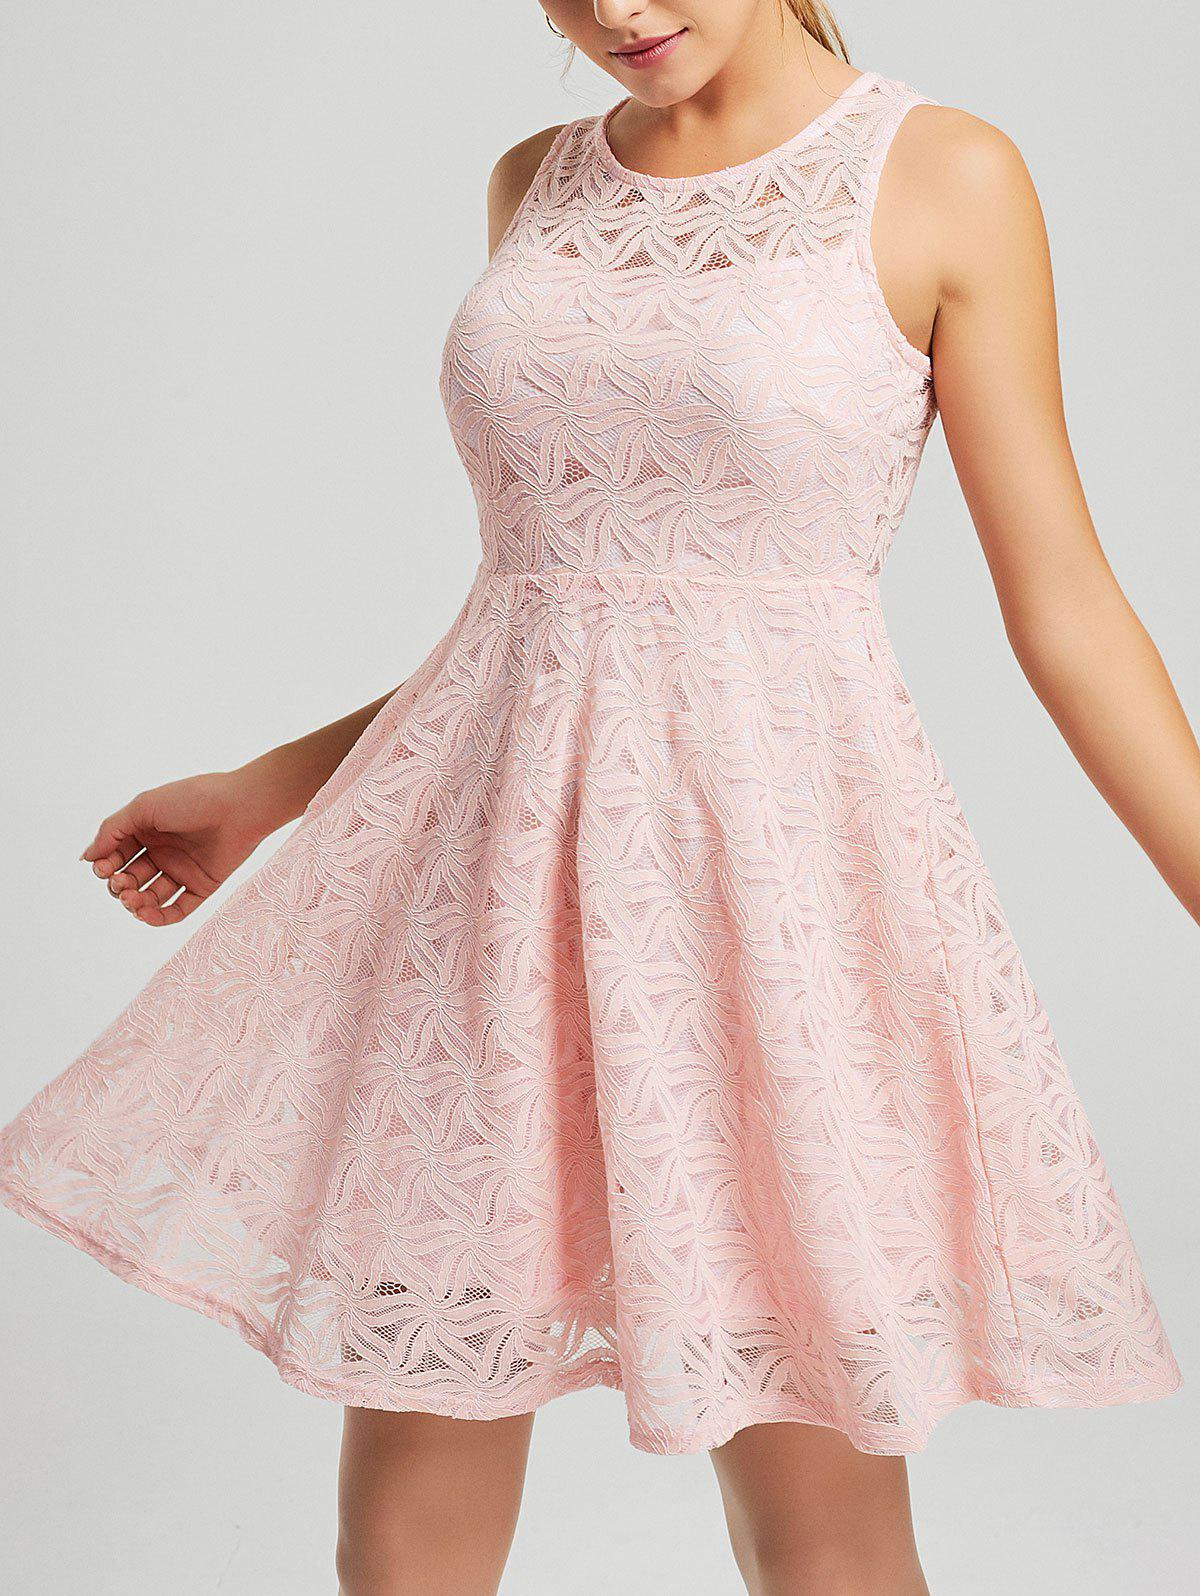 Sleeveless Lace Mini Cocktail Dress - PINK M